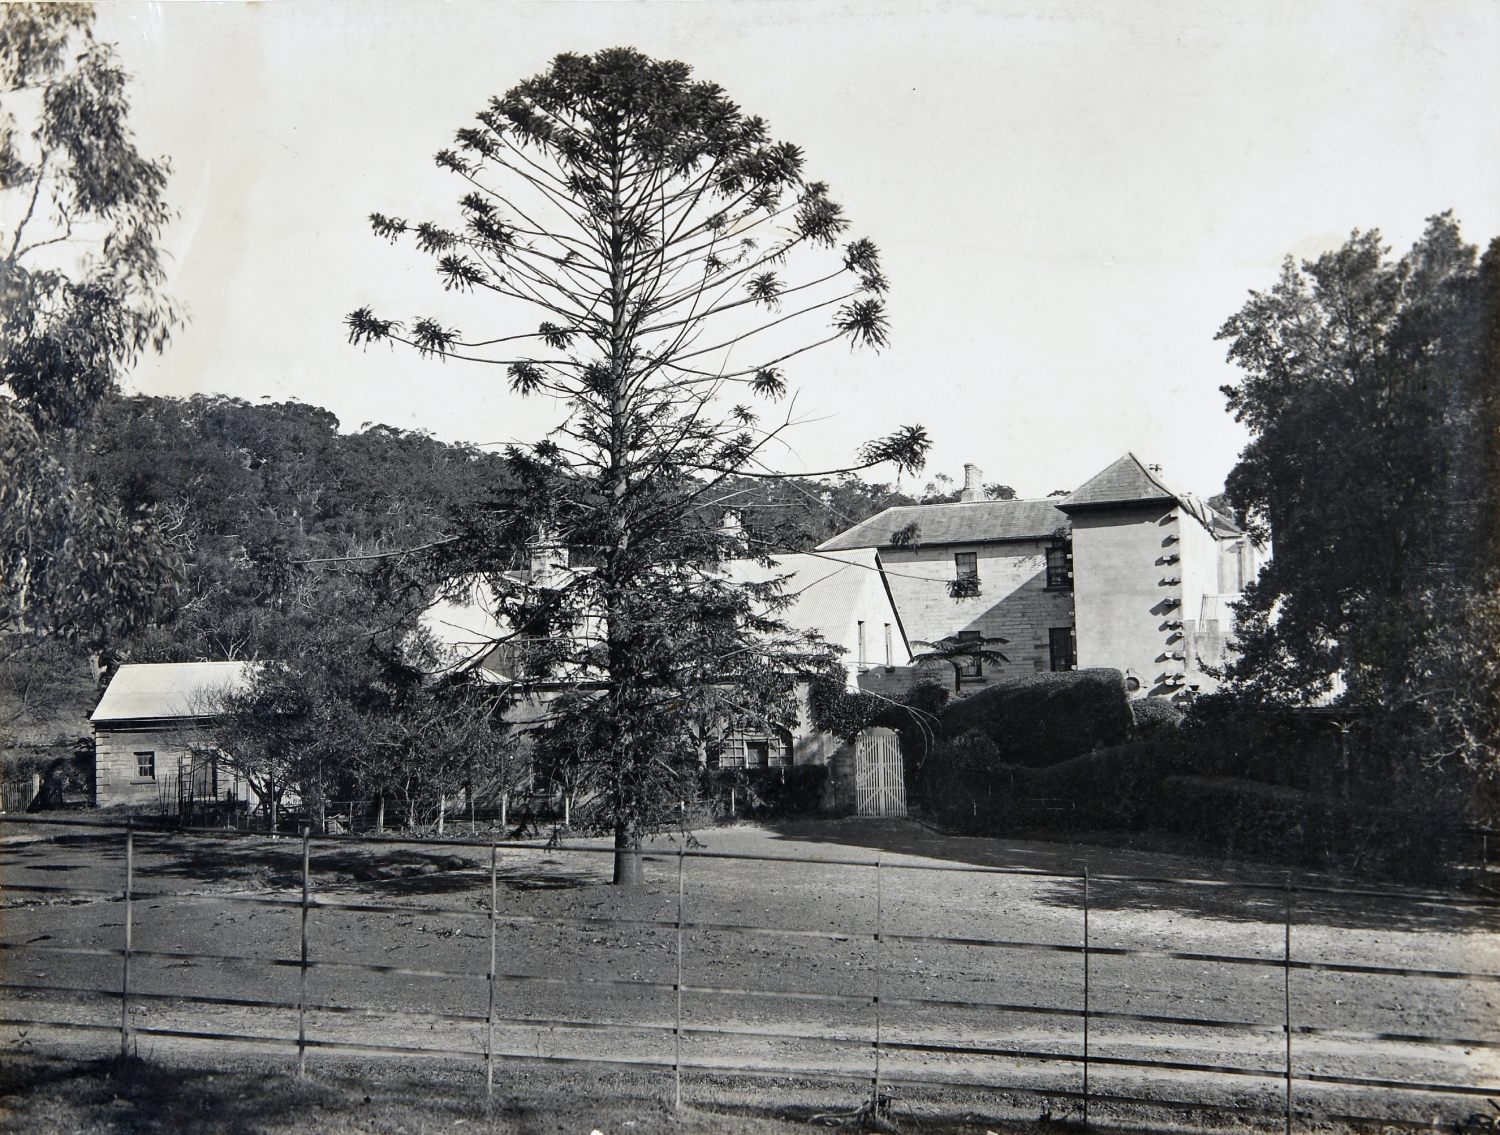 Black and white image of house from side with large pine tree in foreground.